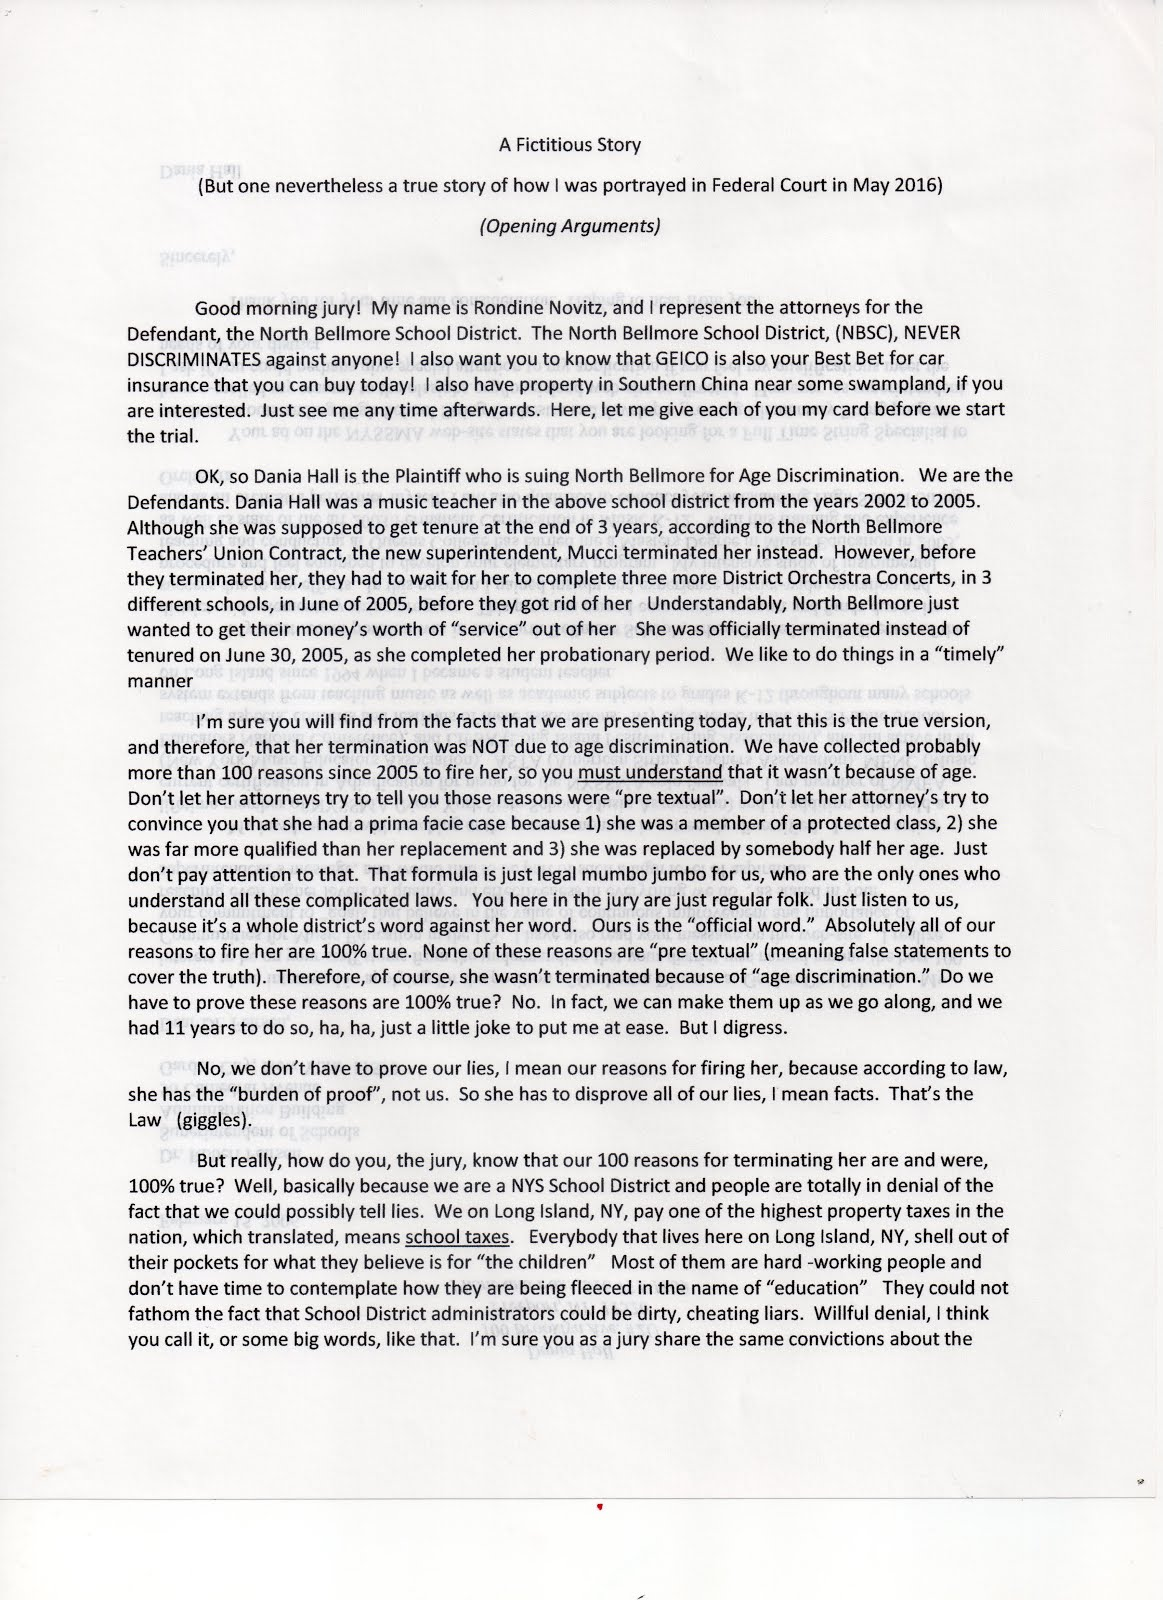 A Fictitious Story (revised) page 1